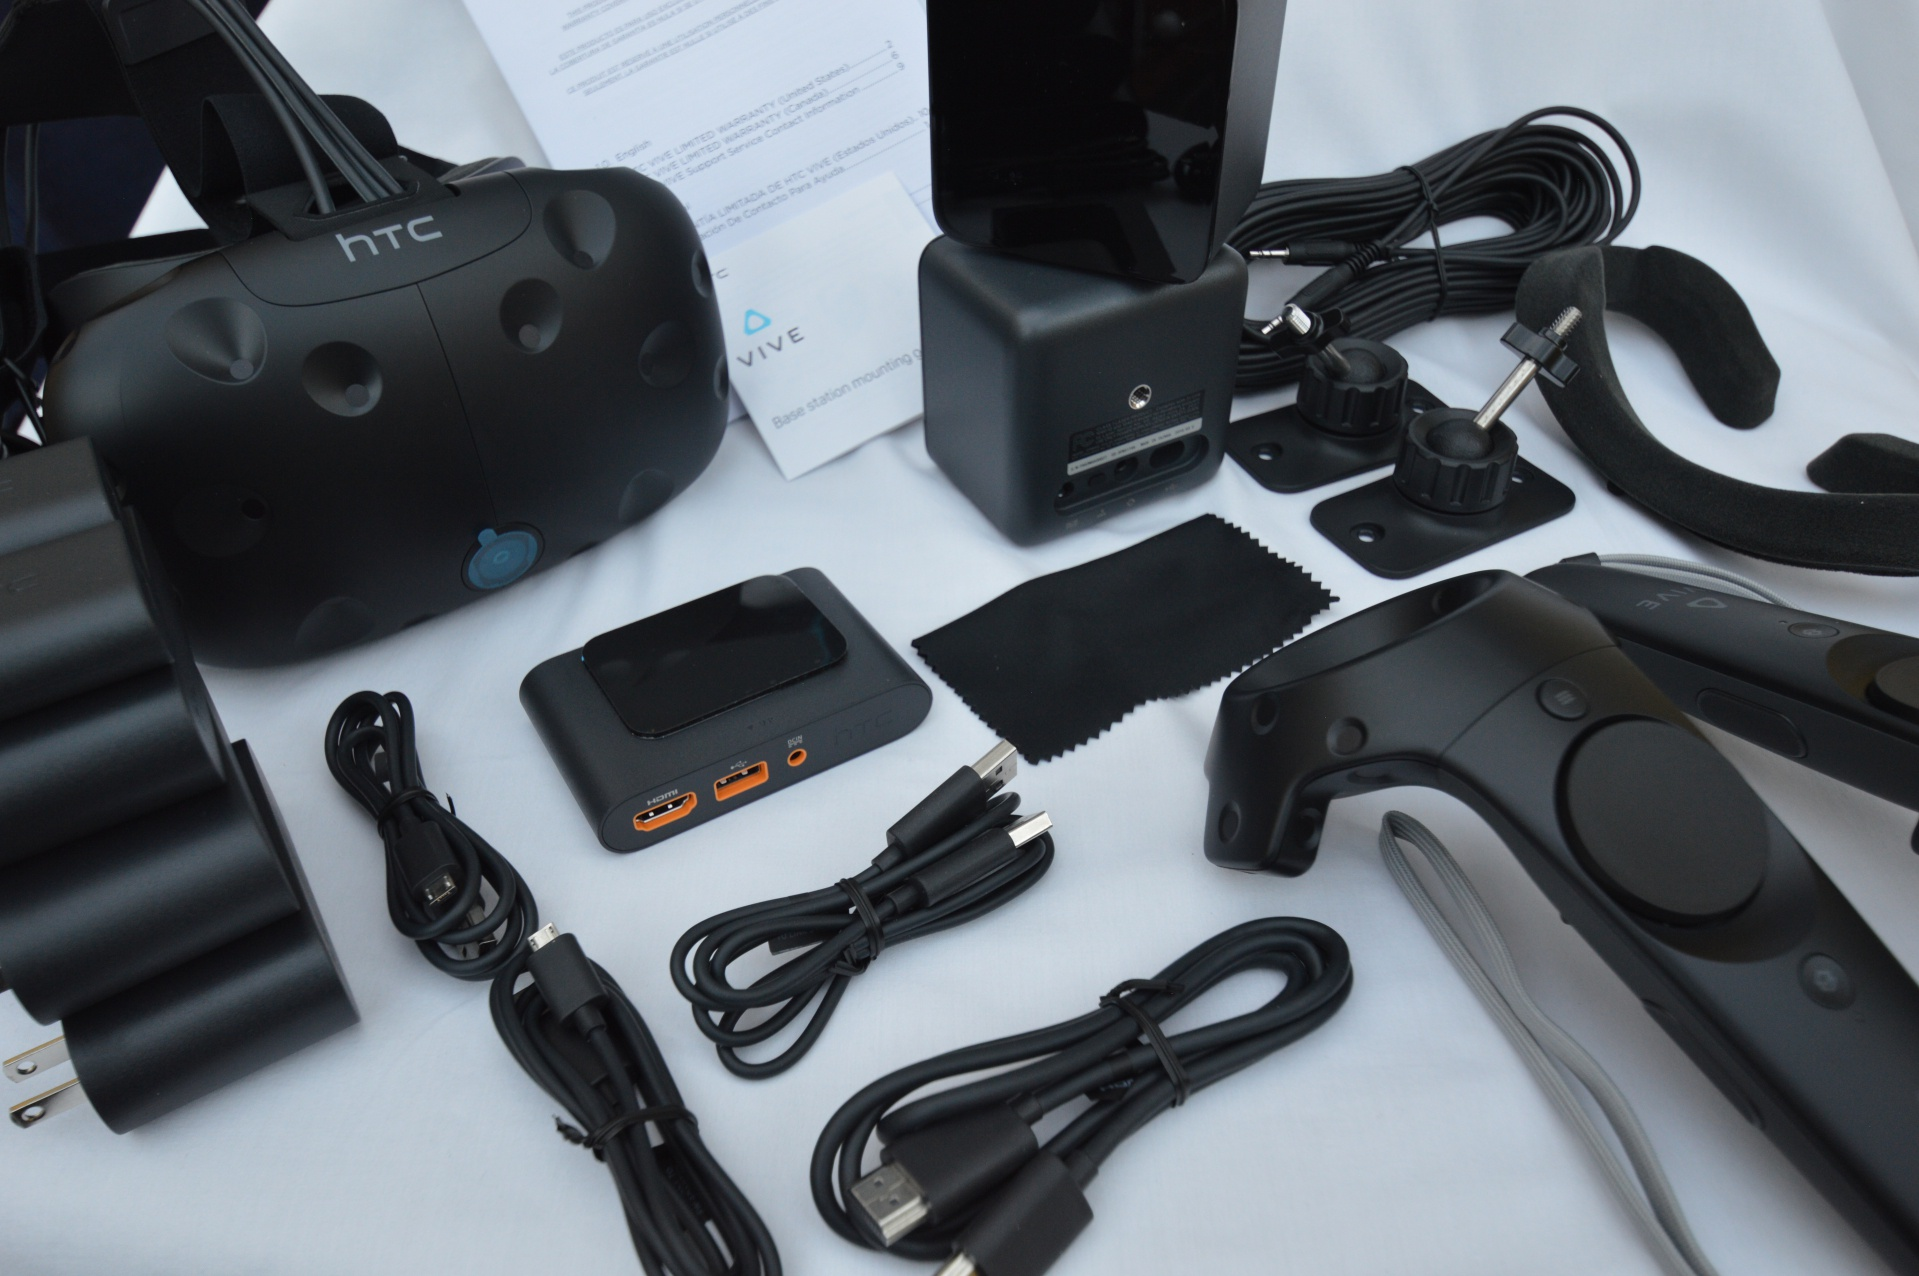 'HTC Vive' App Returns to iOS to Keep You (Somewhat) Connected to Your iPhone Inside the Vive